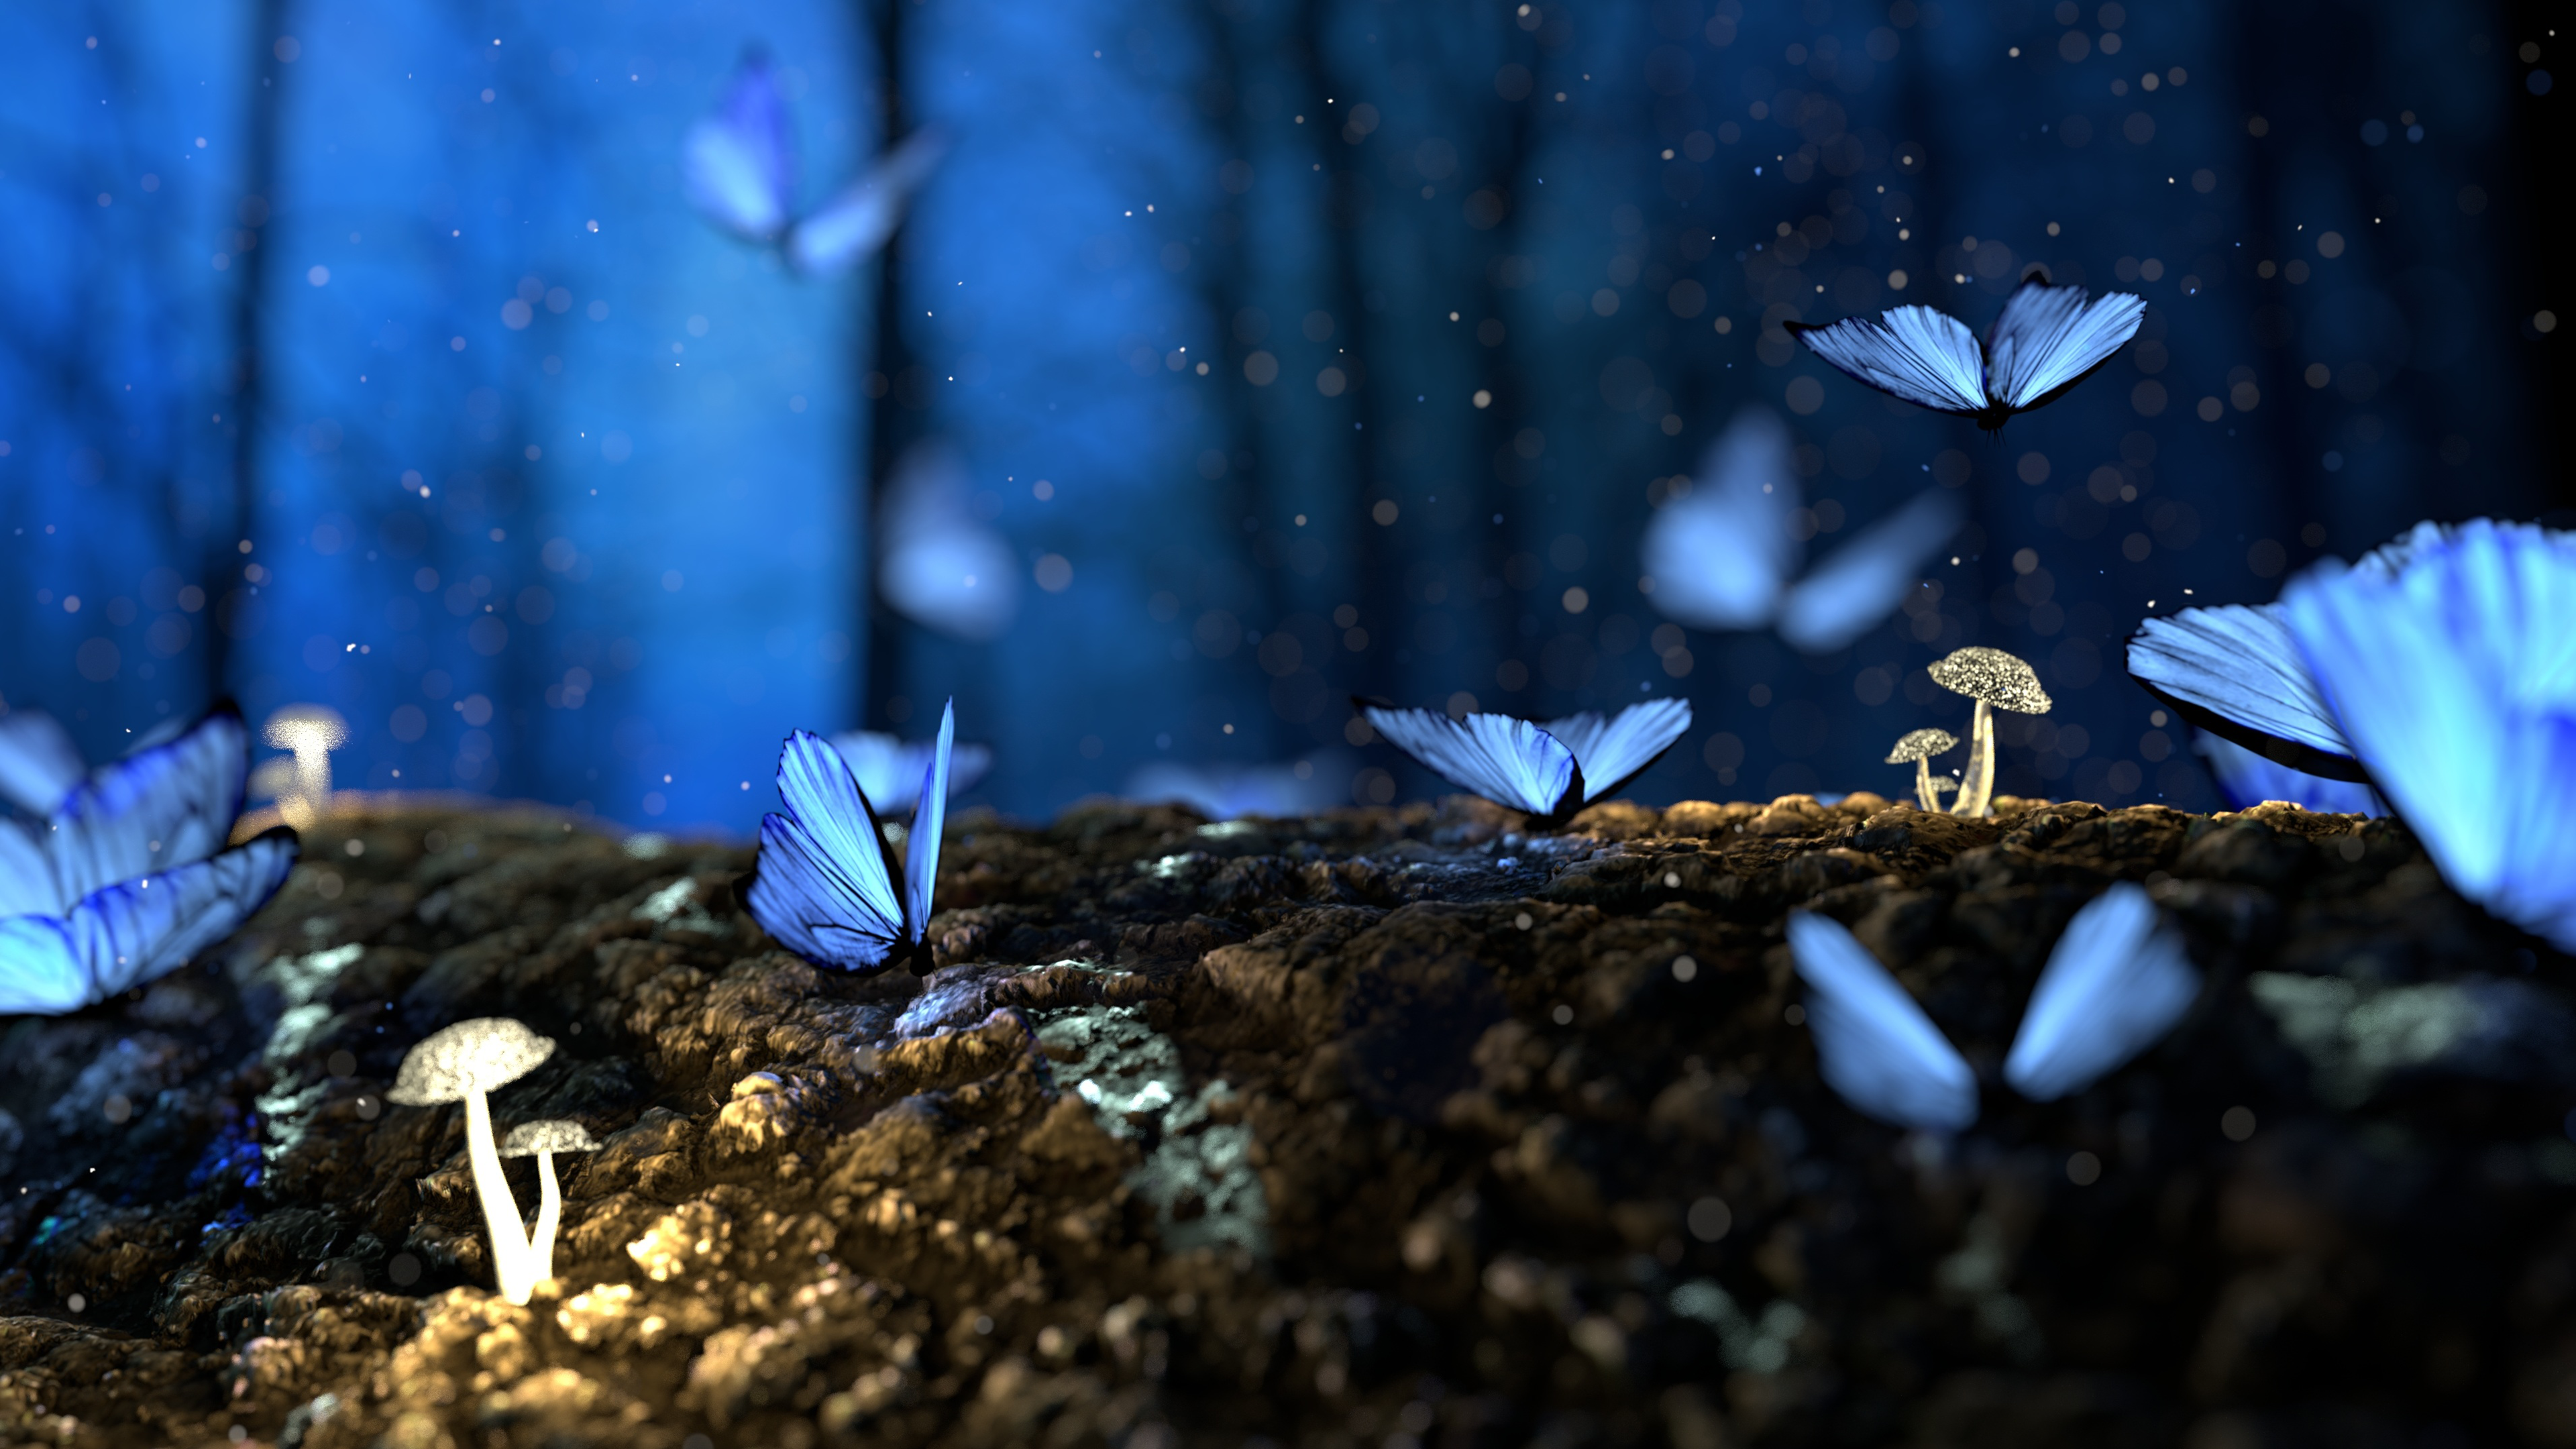 Blue Butterflies 4K Wallpaper Download